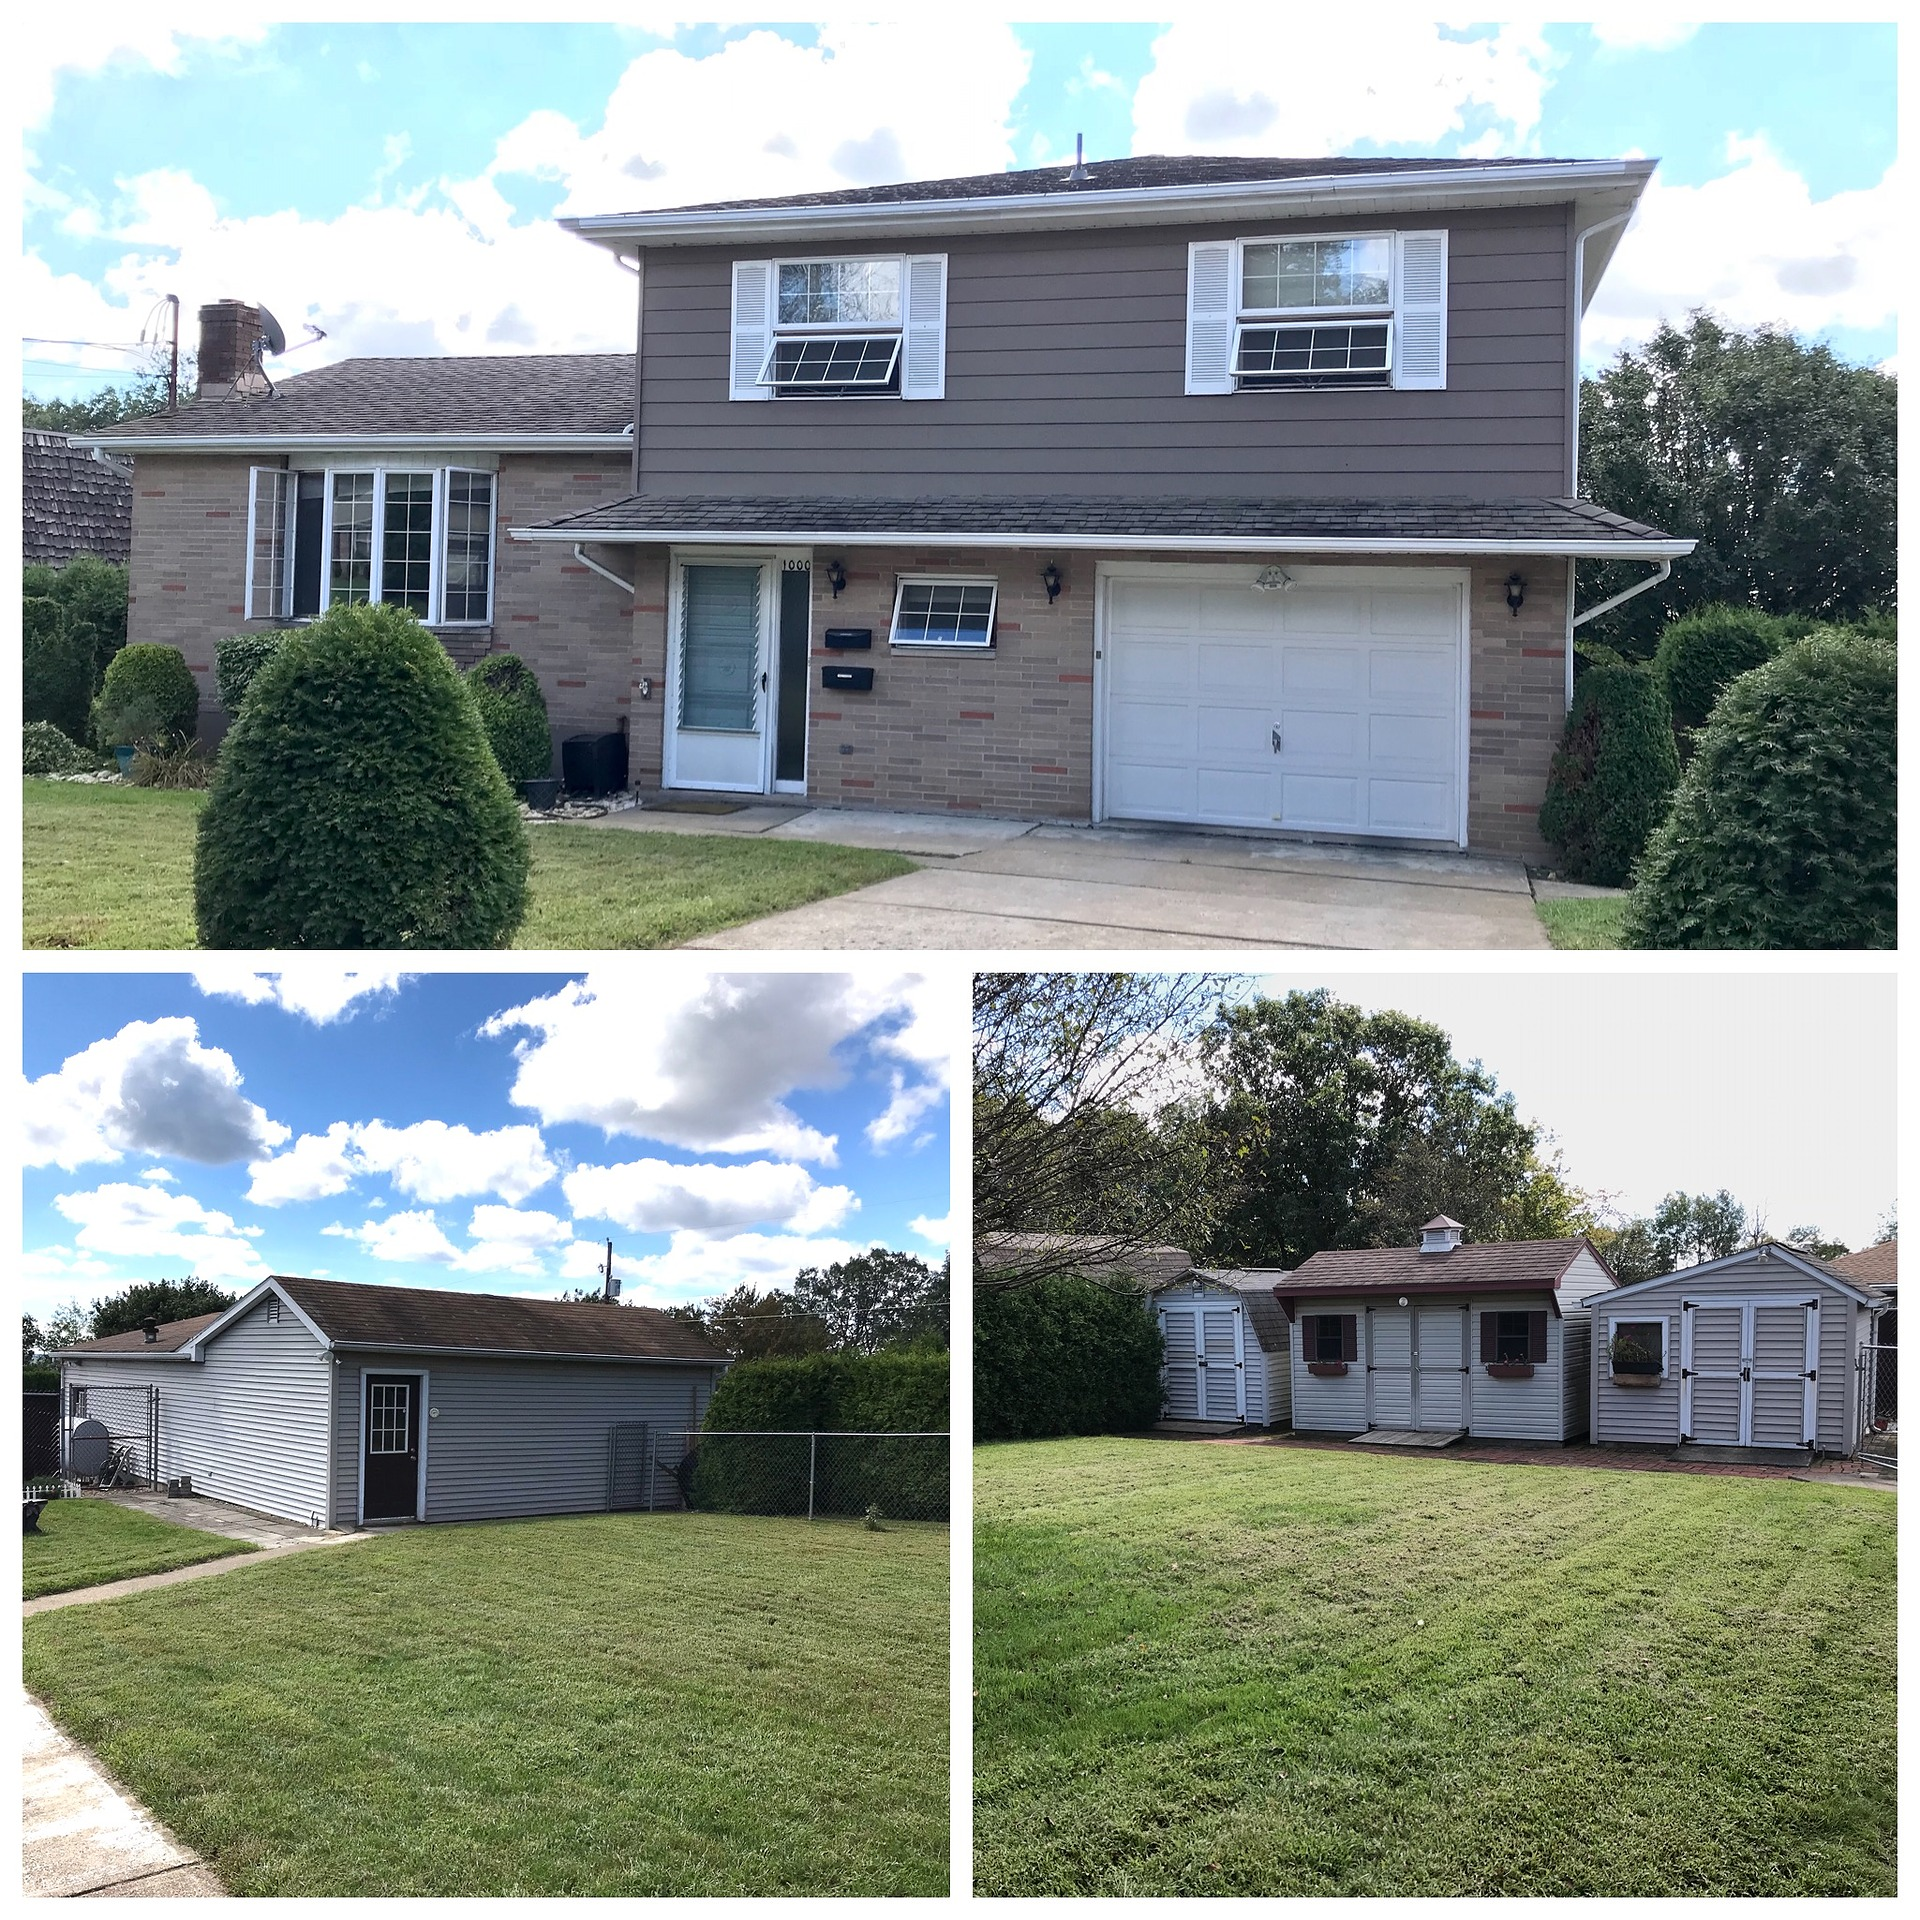 Hazleton - 3 Bedroom 3 Bath $149,000